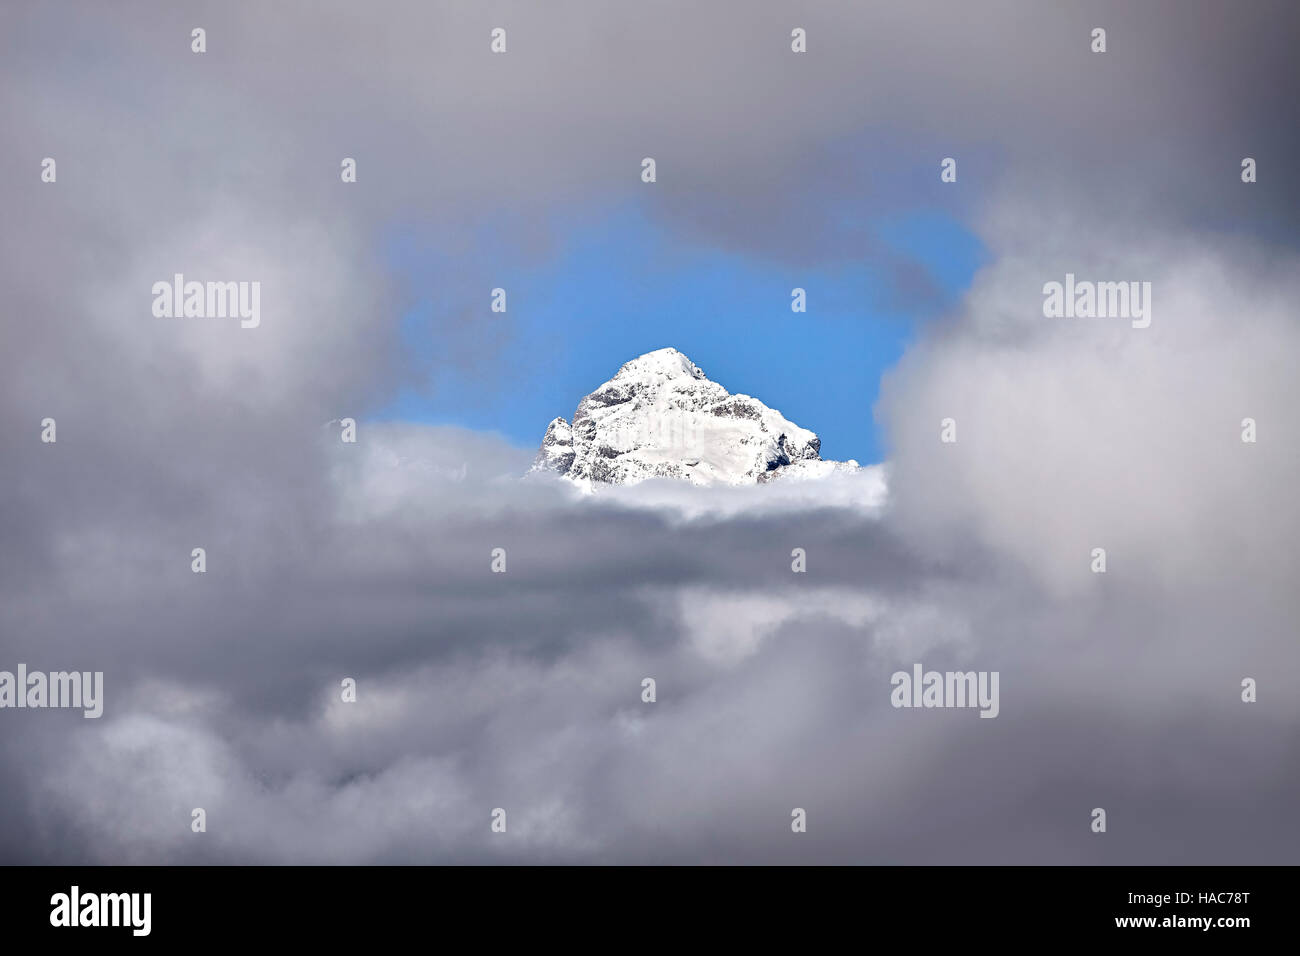 Grand Teton peak in cloud frame, Grand Teton National Park, Wyoming, USA. - Stock Image